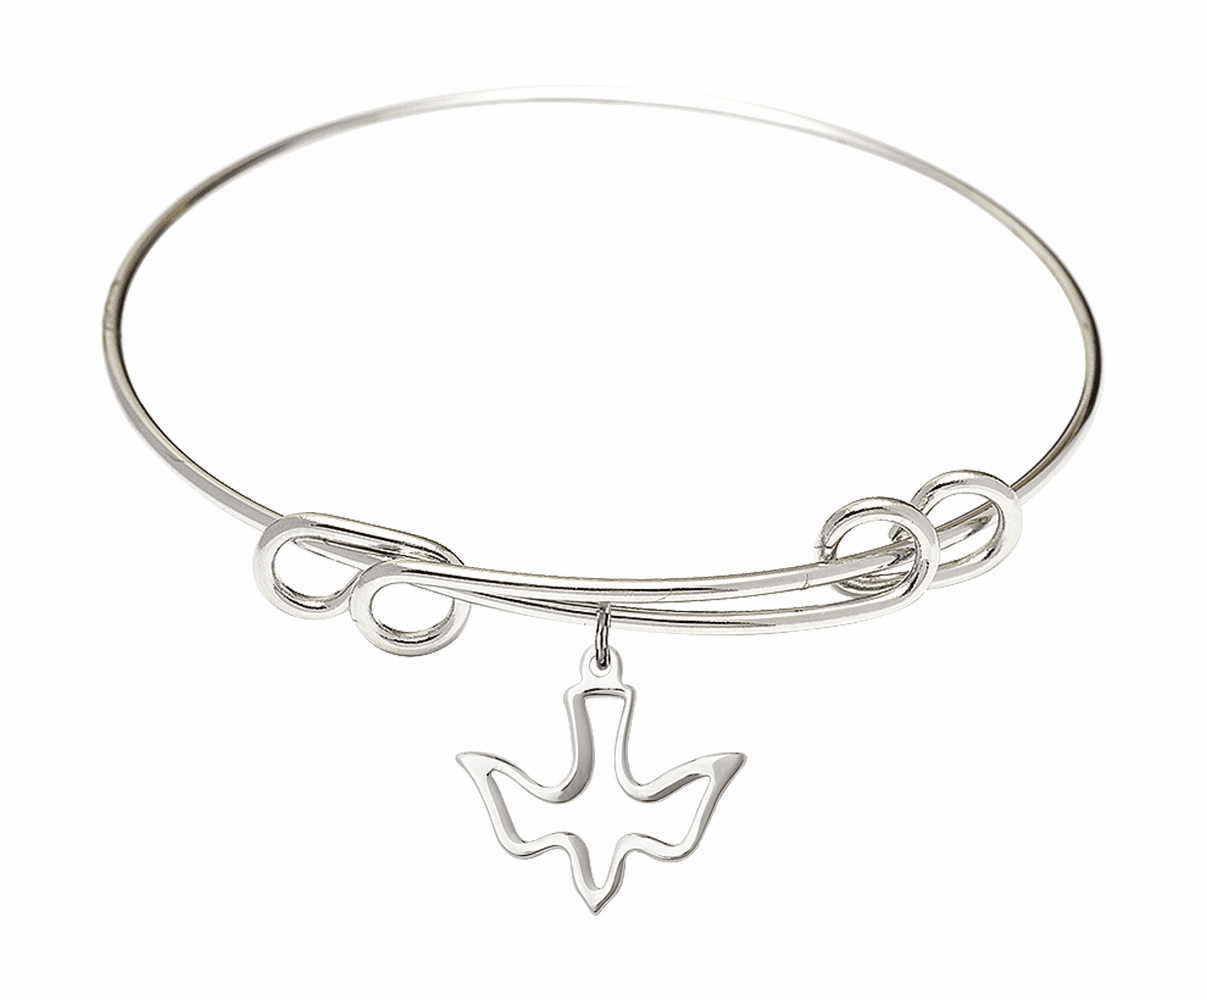 Round Double Loop Bangle Bracelet w/Holy Spirit Dove Sterling Silver Charm by Bliss Mfg